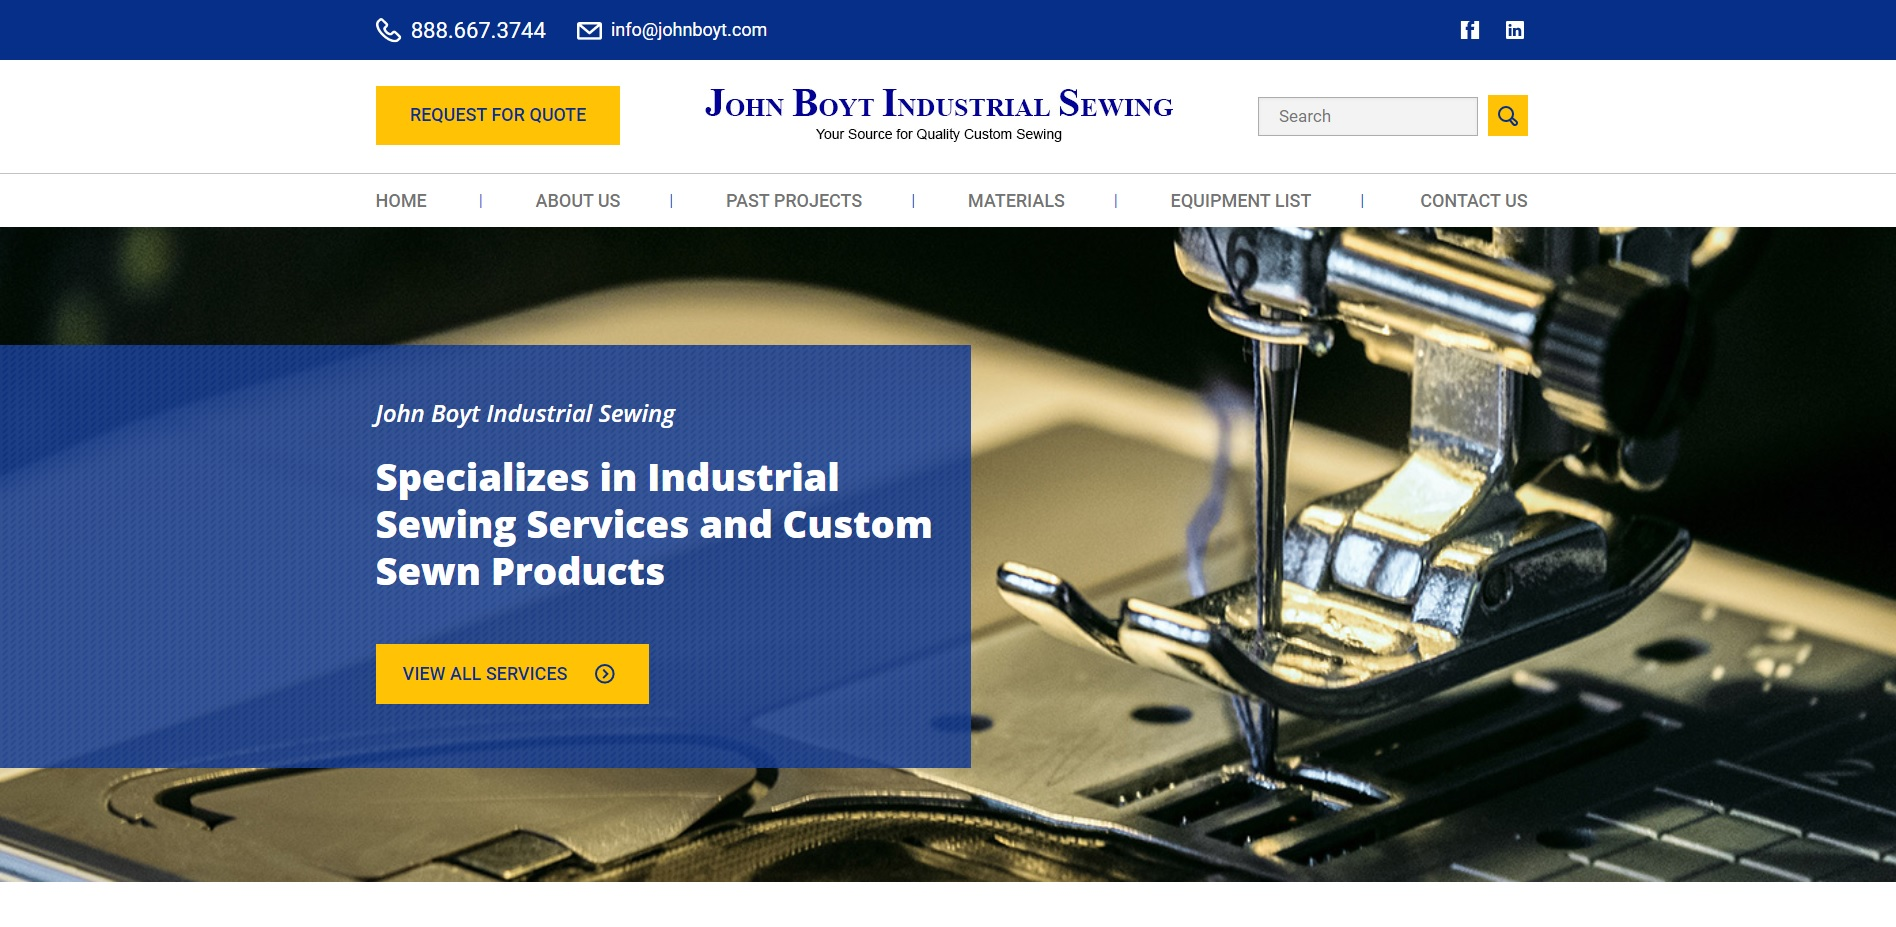 John Boyt Industrial Sewing